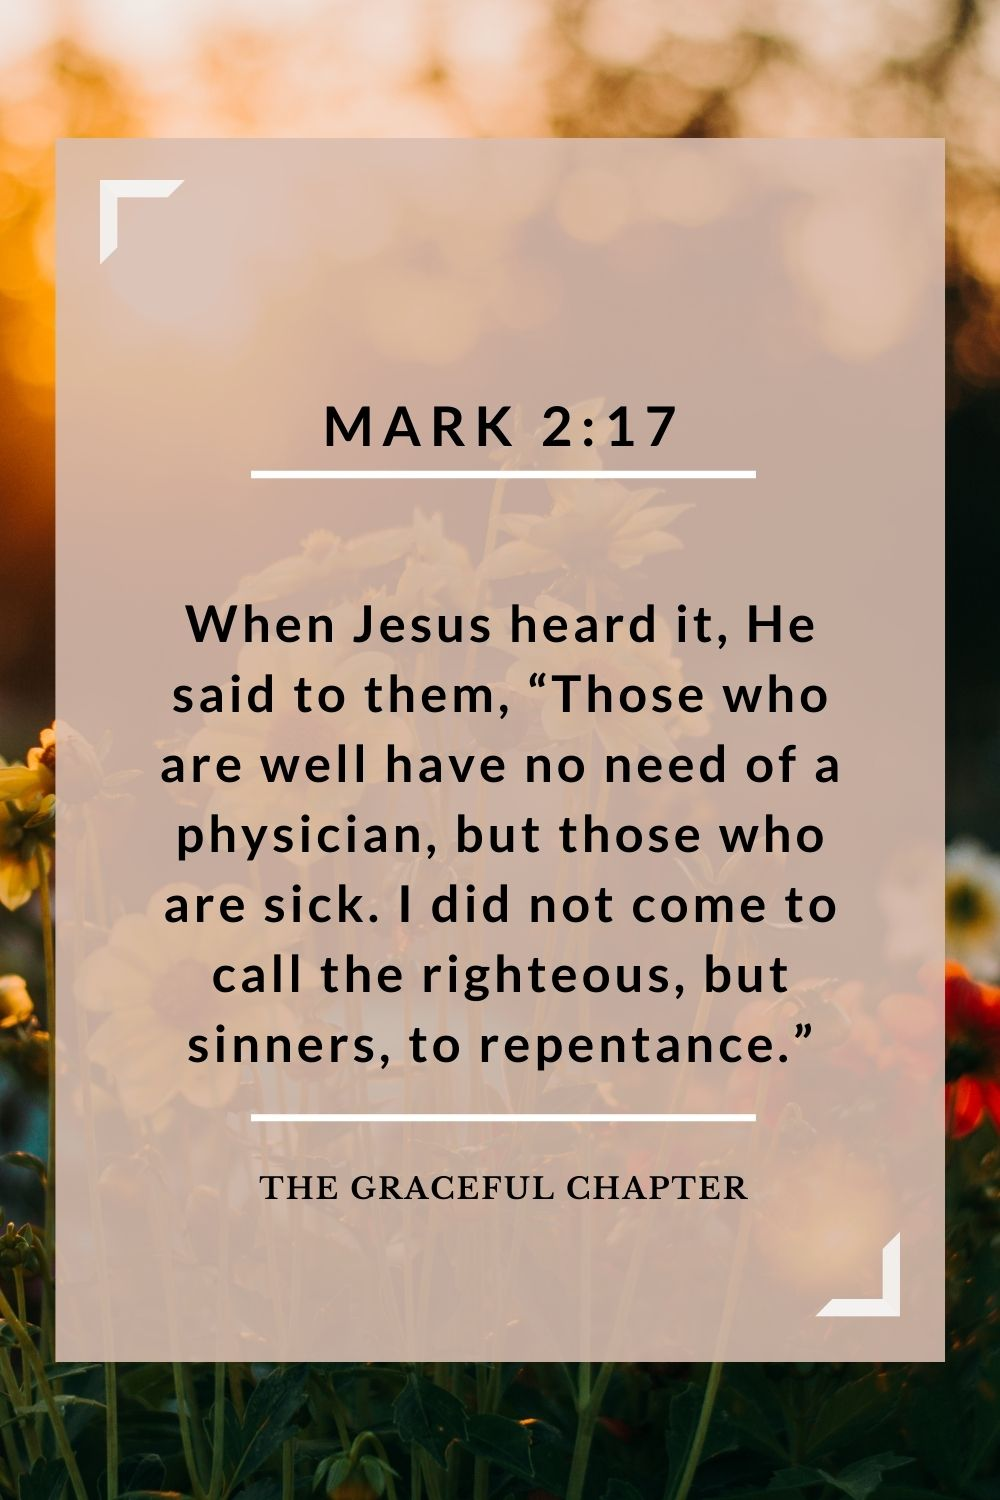 "When Jesus heard it, He said to them, ""Those who are well have no need of a physician, but those who are sick. I did not come to call the righteous, but sinners, to repentance."" Mark 2:17"